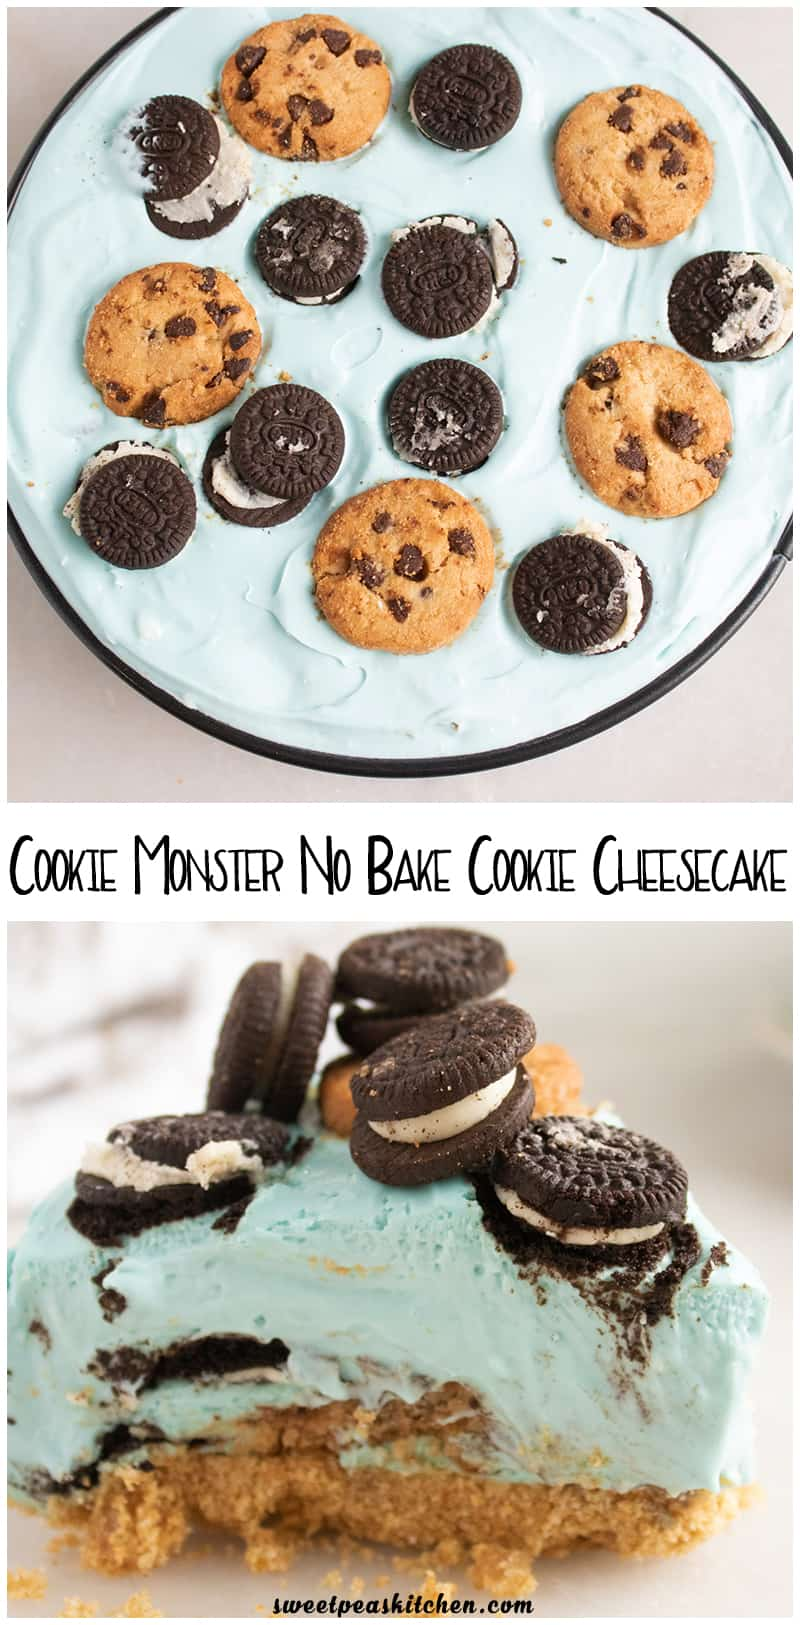 Cookie Monster No Bake Cookie Cheesecake